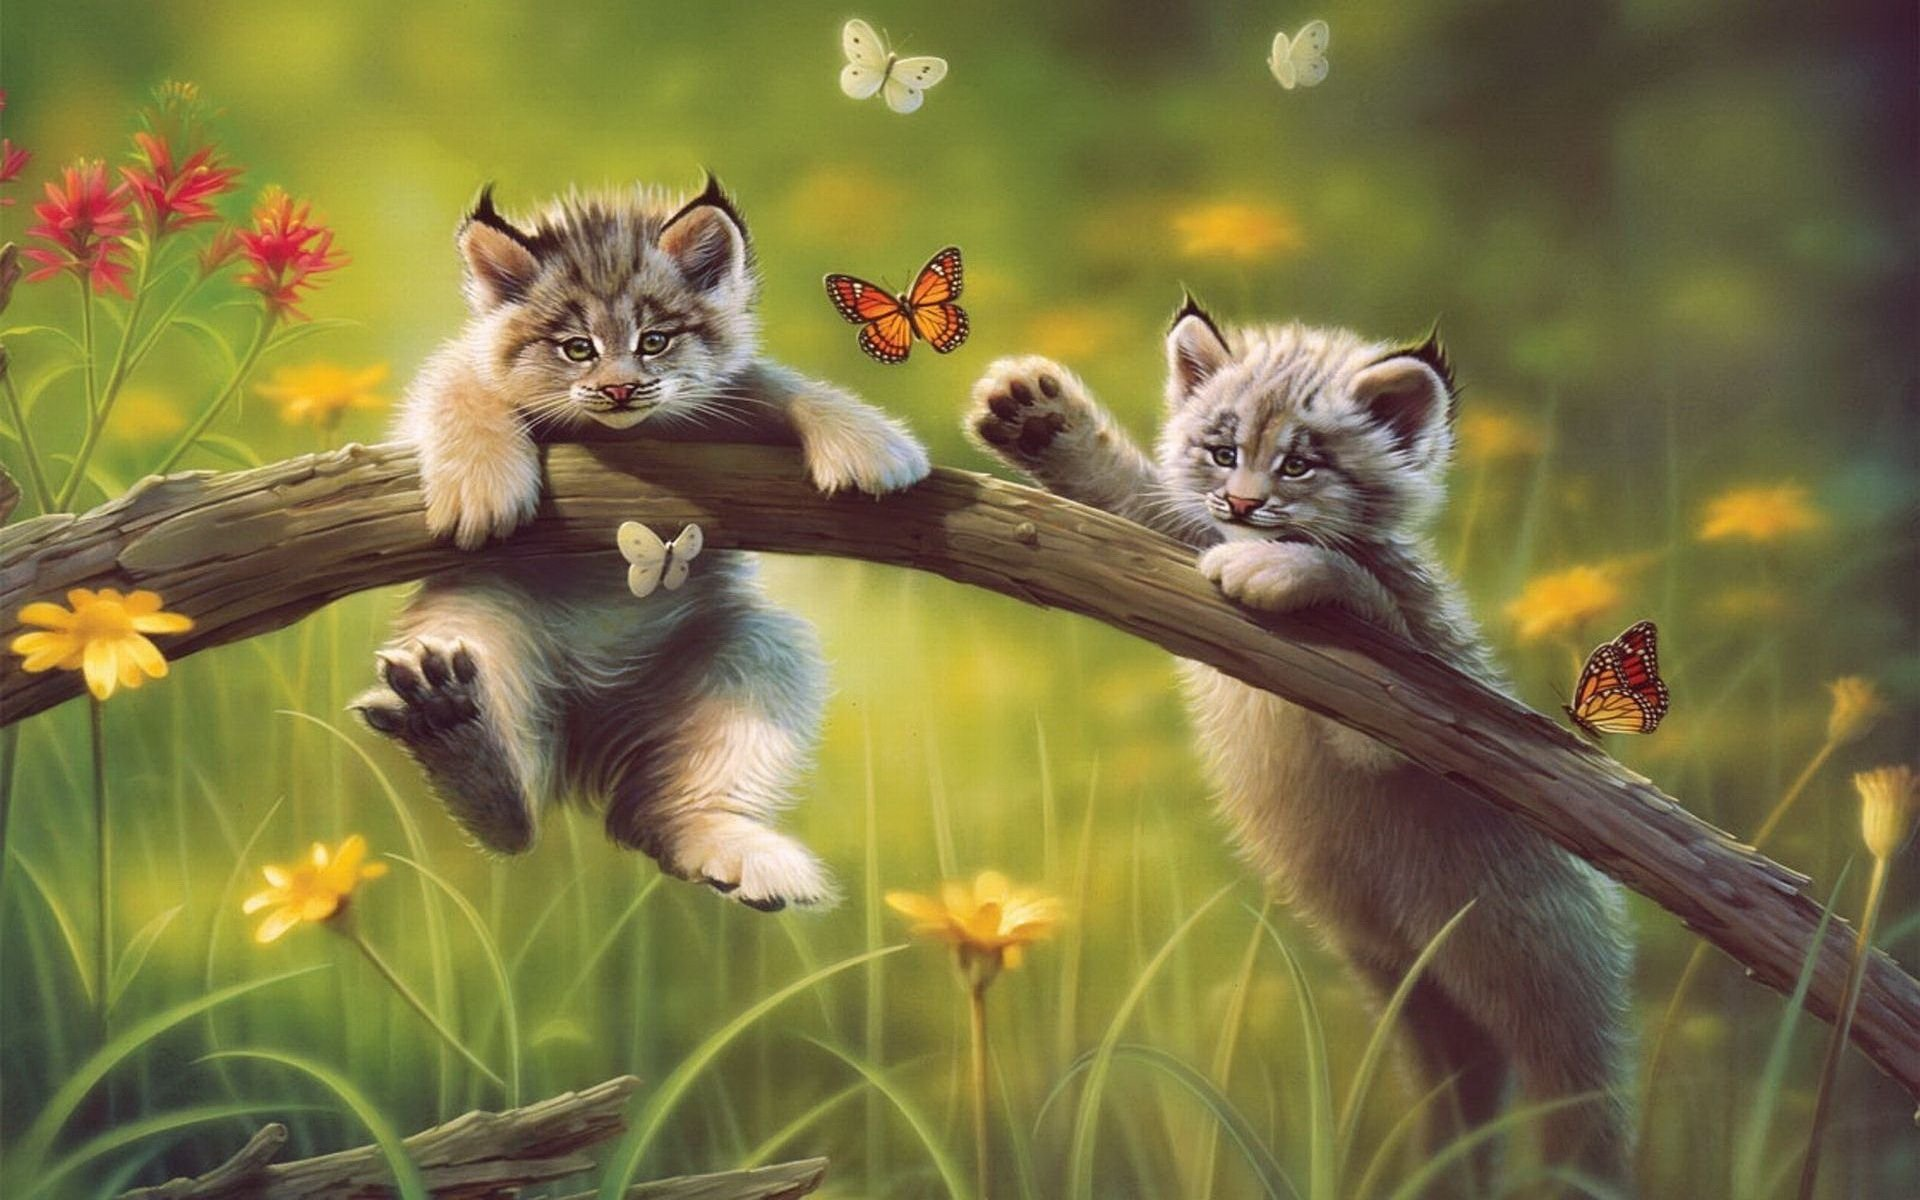 Popular Wallpaper Cat Butterfly - thumb-1920-690441  Pictures_569312 .jpg